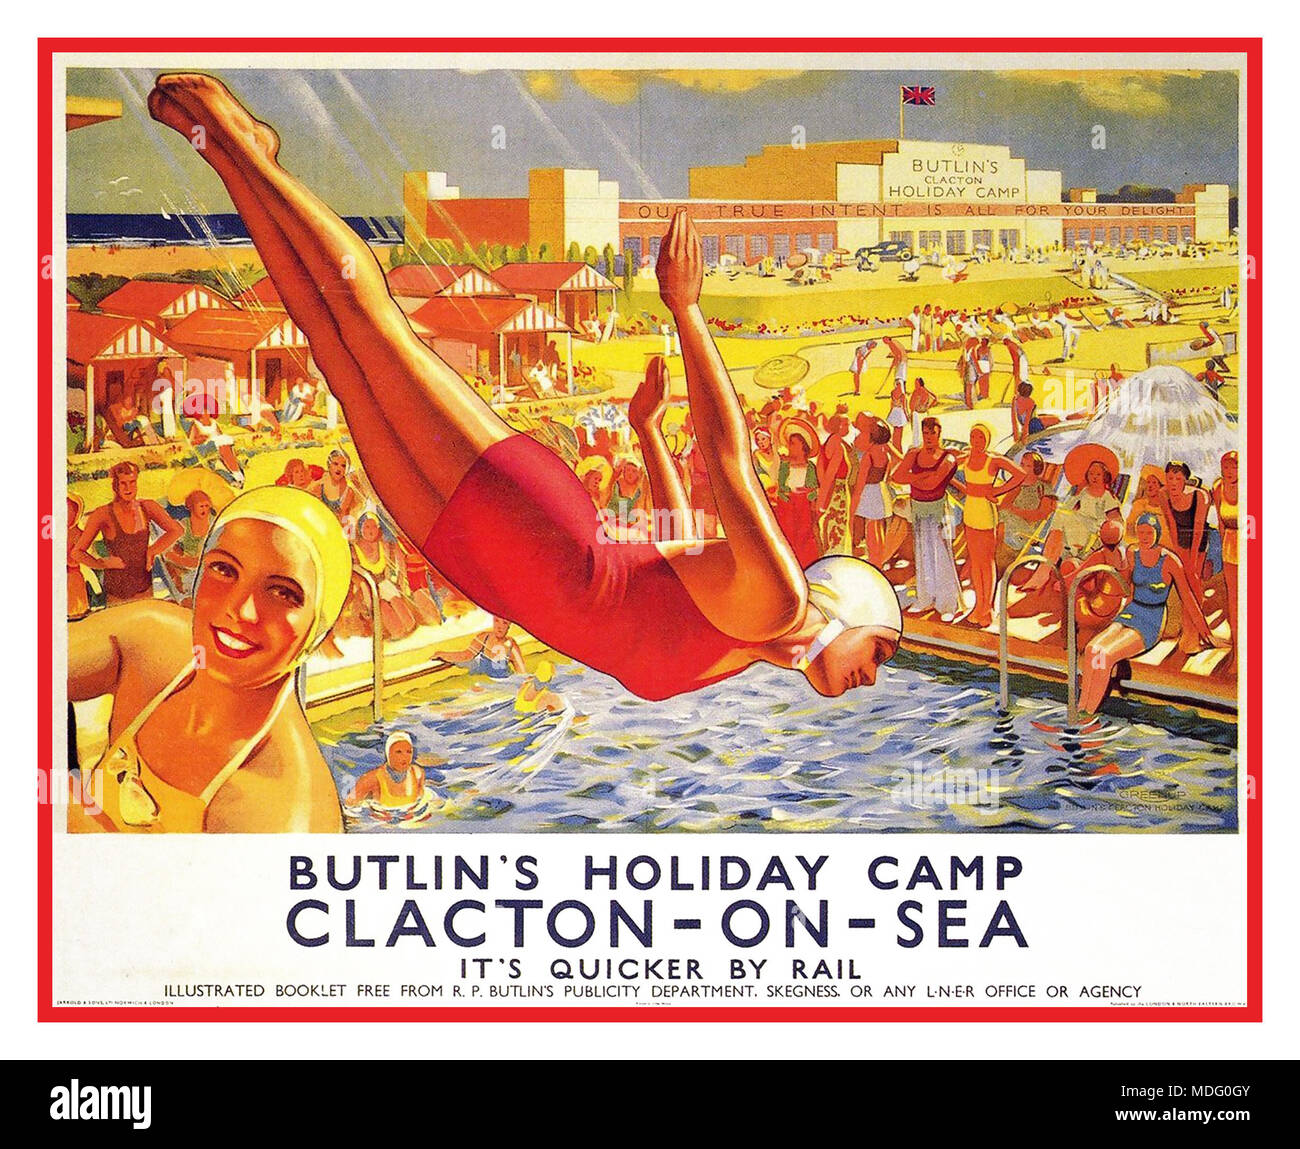 Vintage 1940's holiday 'quicker by rail' poster Butlin's Holiday Camp Clacton-on-Sea UK by J. Greenup 1940 UK - Stock Image